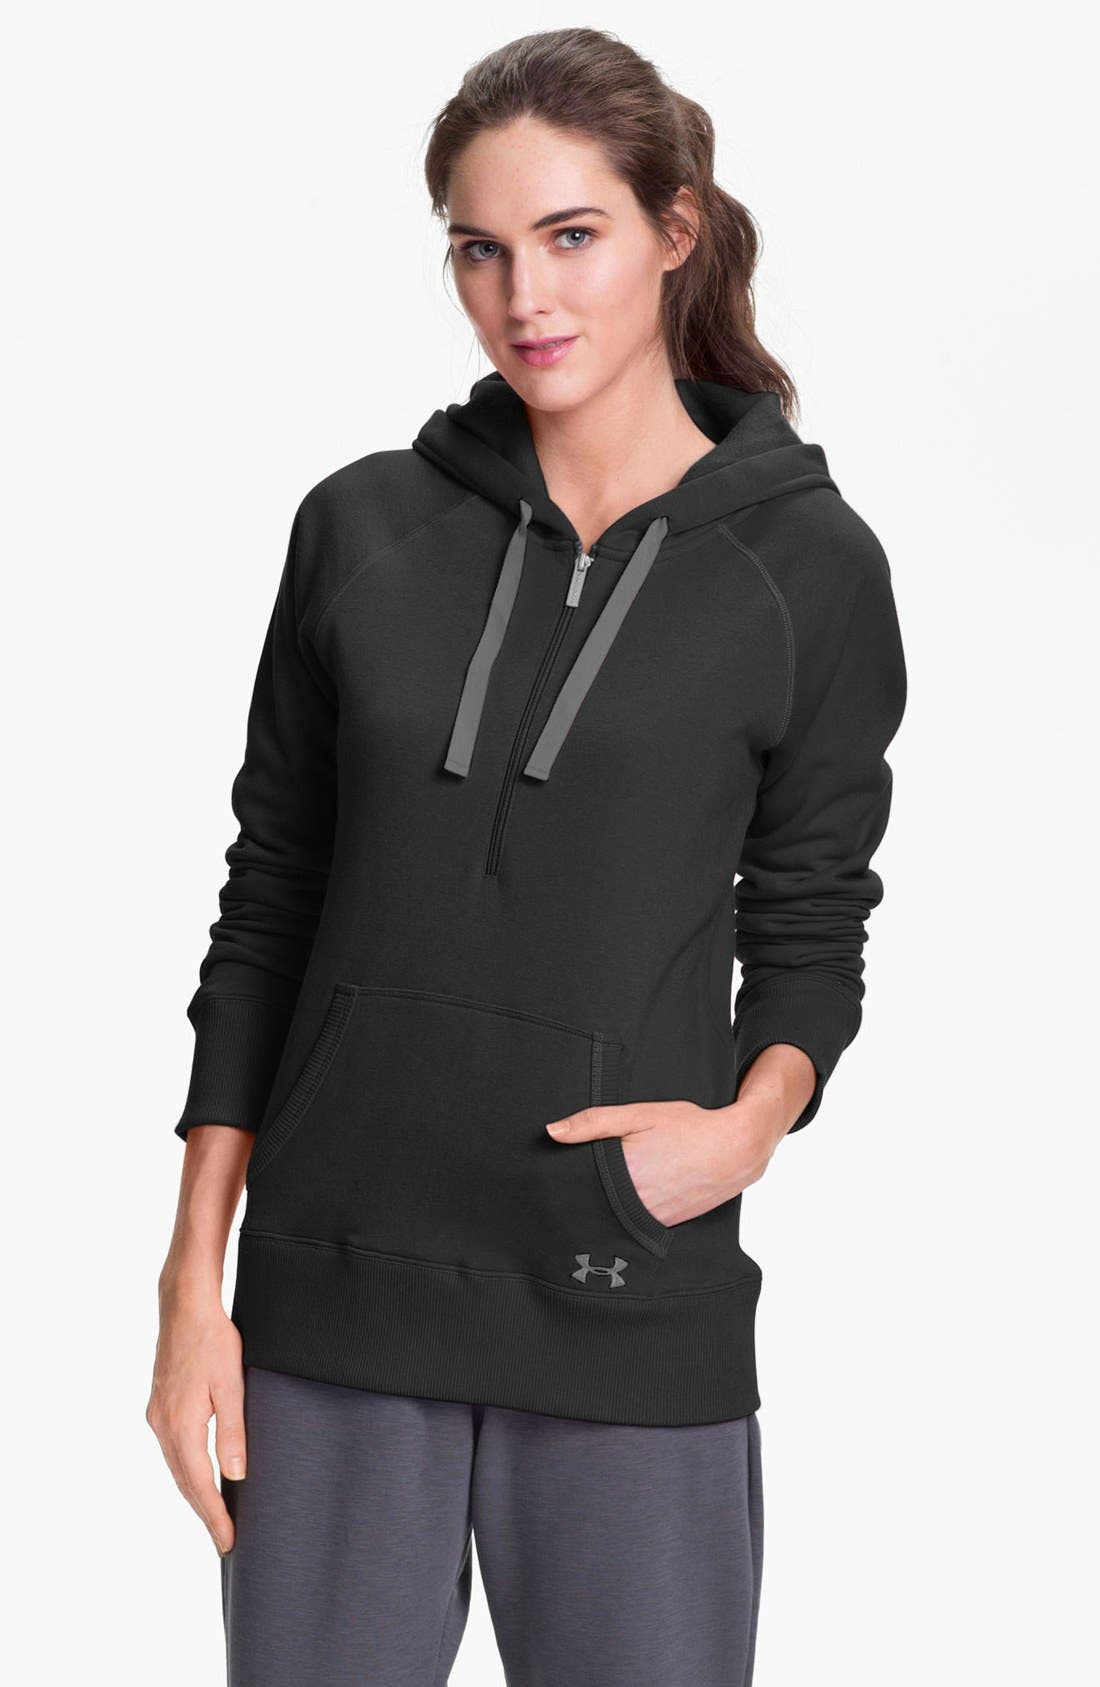 Alternate Image 1 Selected - Under Armour 'Storm' Half-Zip Charged Cotton Hoodie